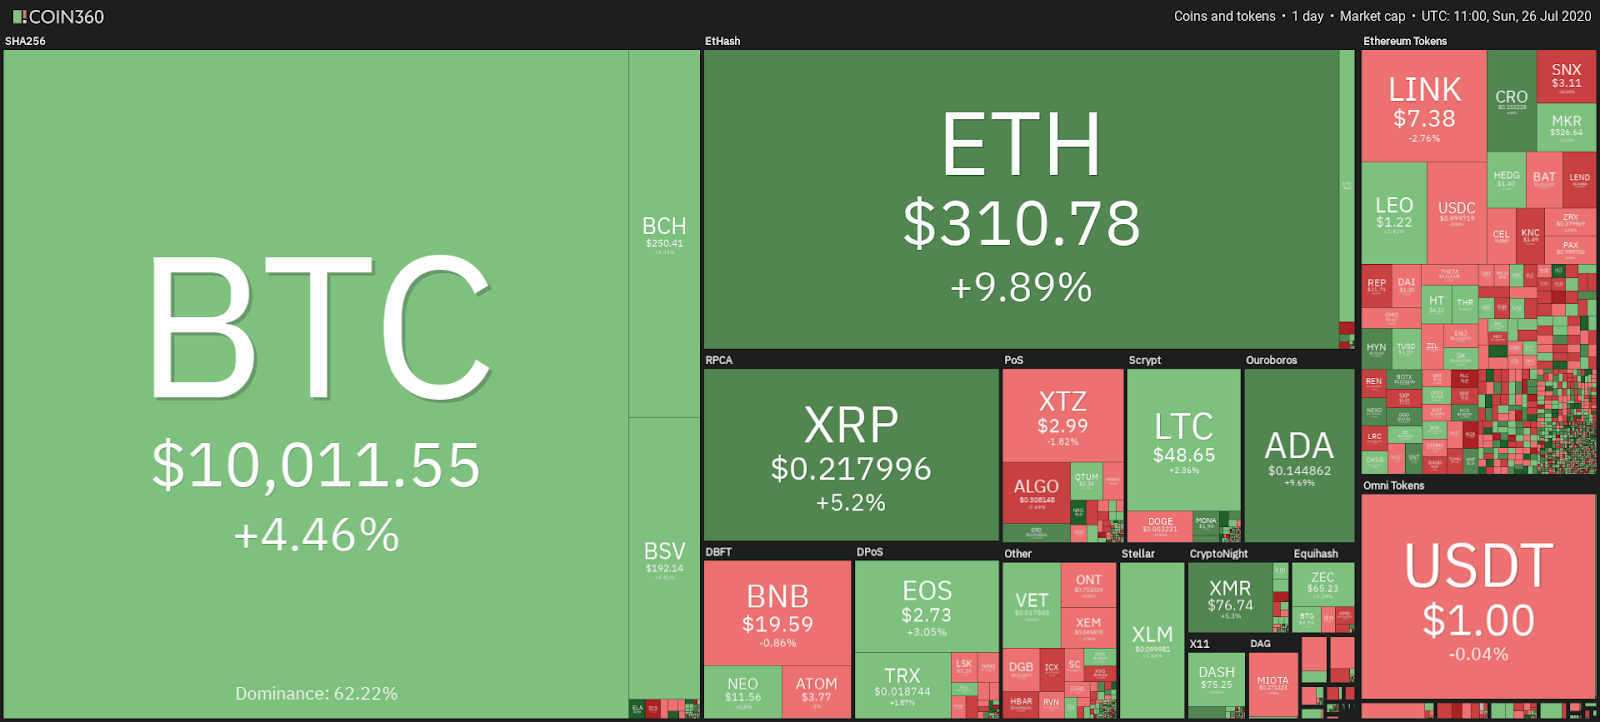 Cryptocurrency market performance July 26